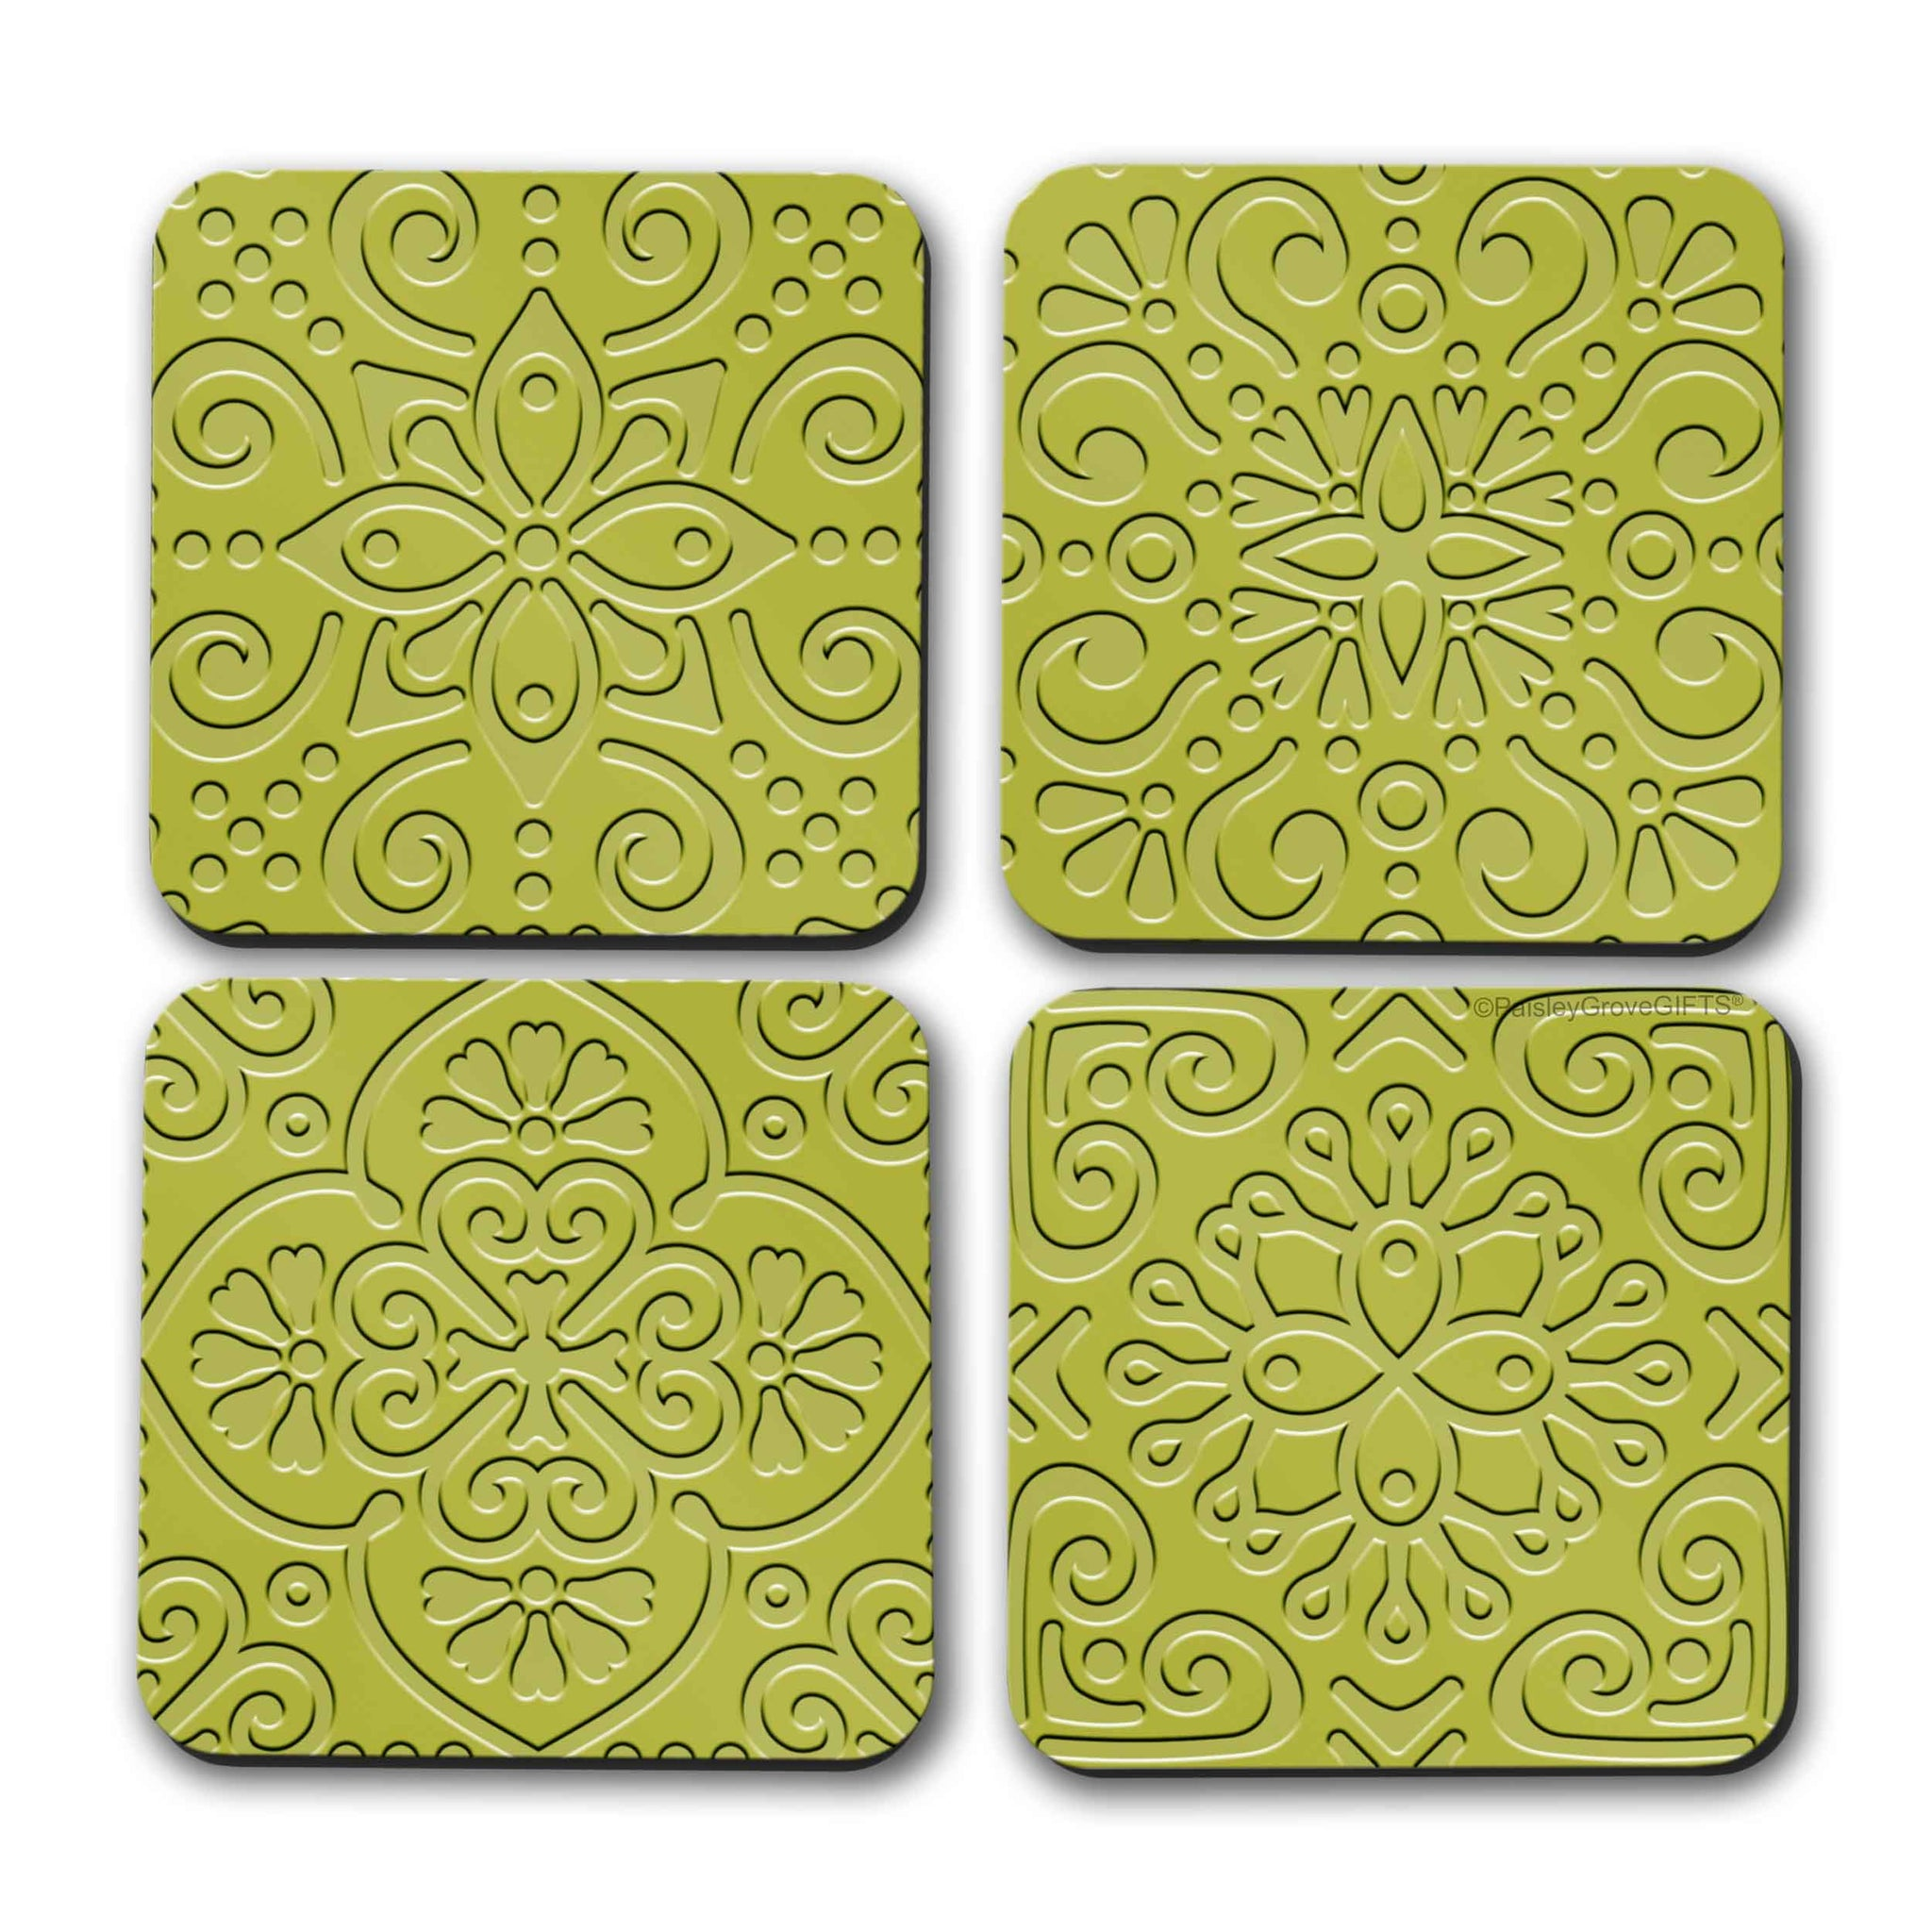 CopyrightPaisleyGroveGIFTS S706b Chartreuse Drink Coasters set of 4 Bold Neon Green Home Decor